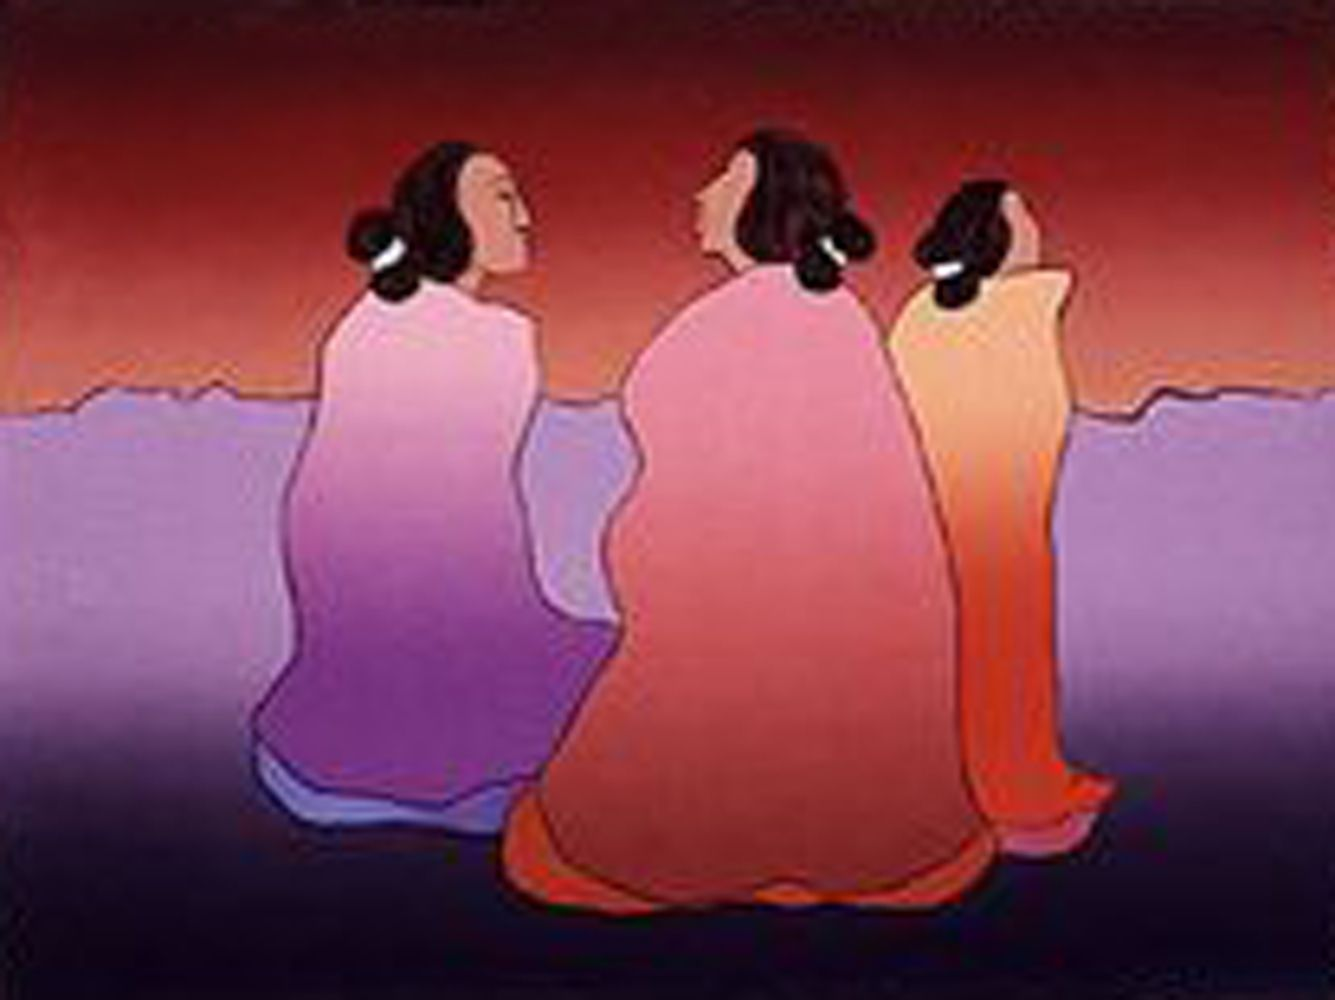 Dusk 1990 by rc gorman serigraph on paper three graces dusk 1990 by rc gorman serigraph on paper dailygadgetfo Image collections